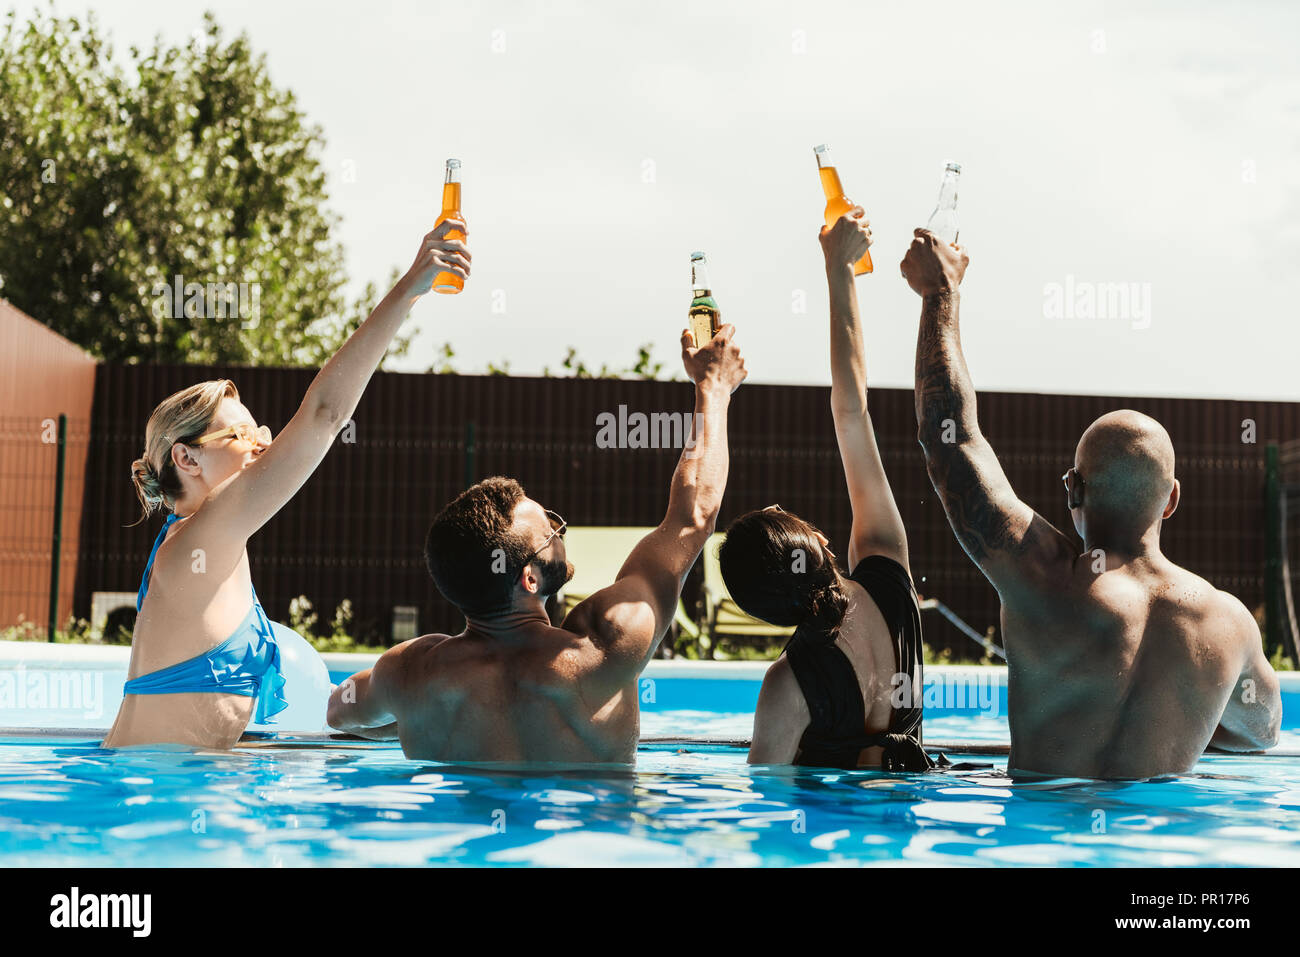 back view of multicultural friends rising up bottles of beer in swimming pool - Stock Image